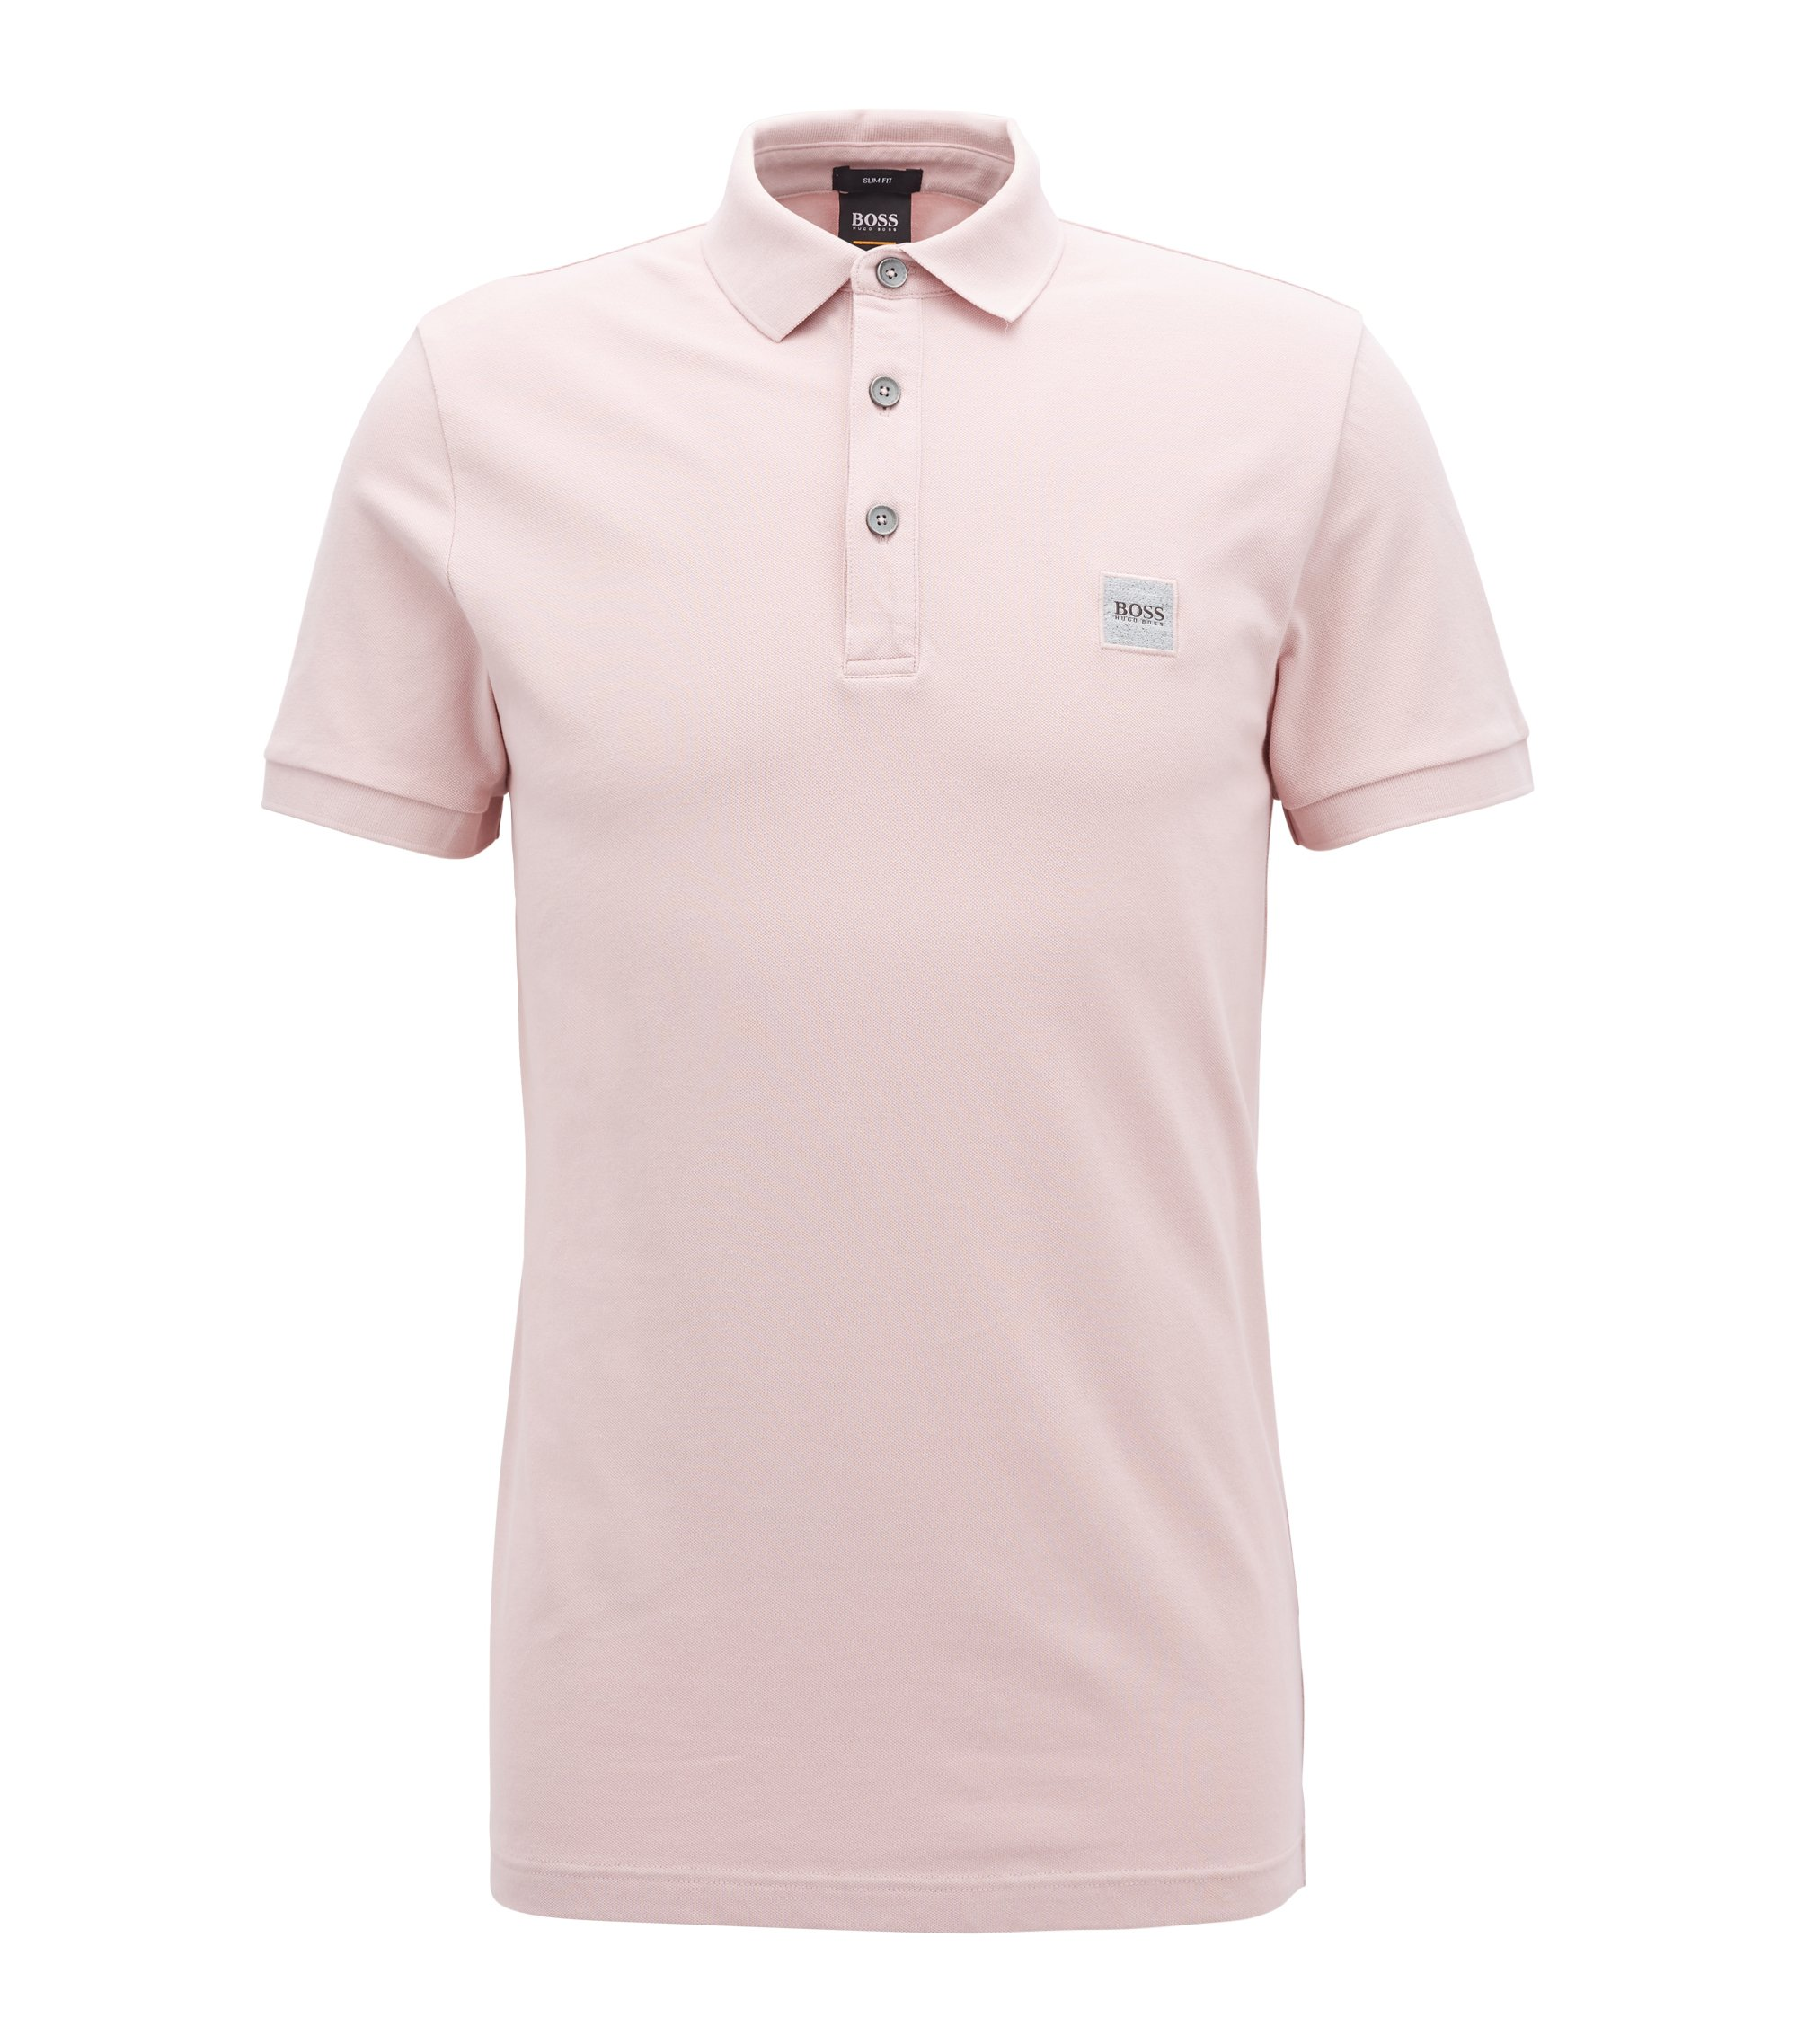 Slim-fit polo shirt in stretch cotton piqué, light pink